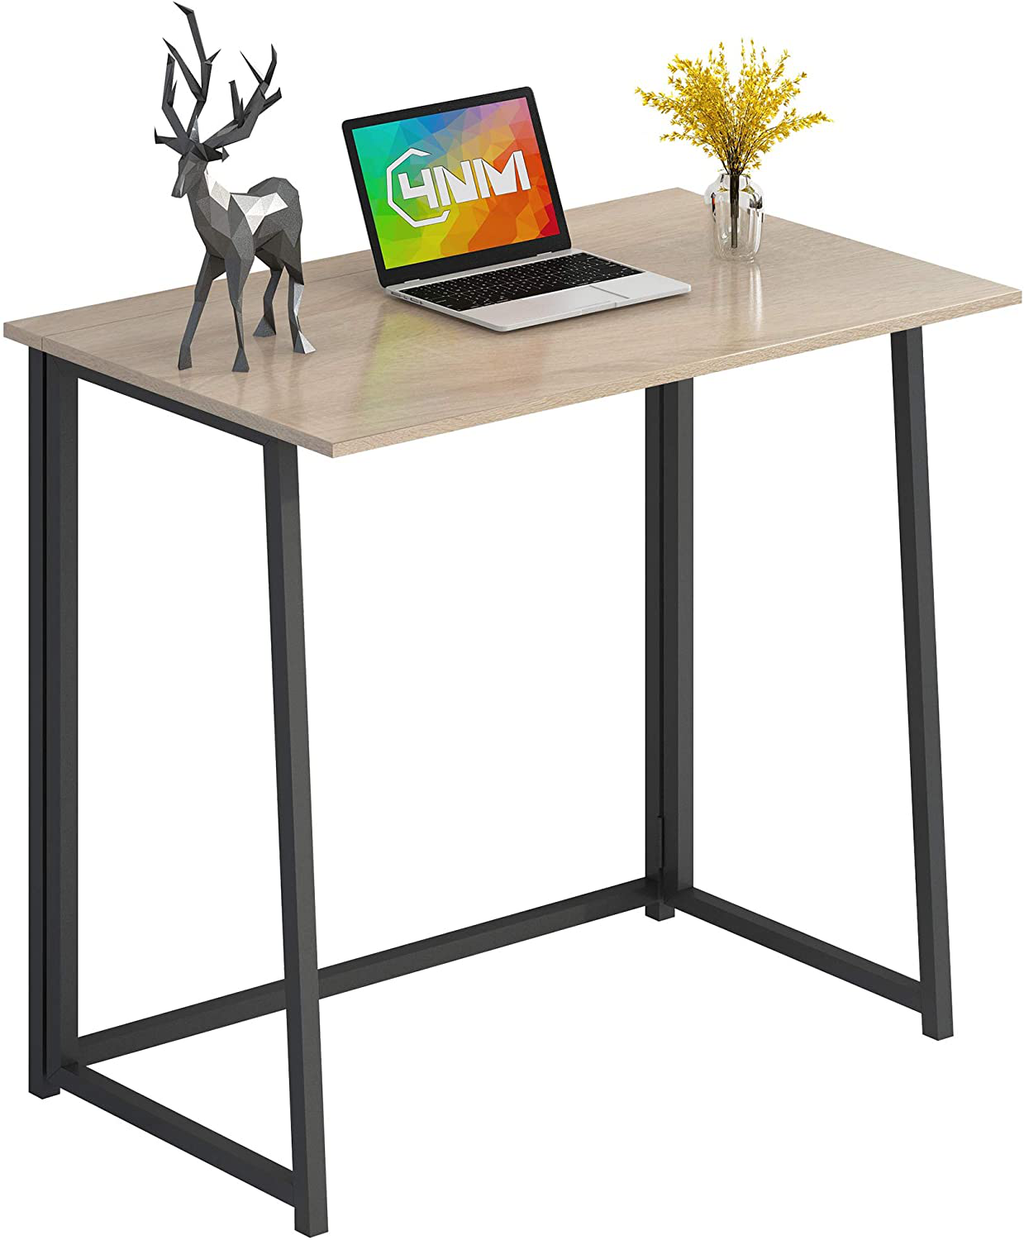 "4NM 31.5"" Small Desk Folding Computer Desk Home Office Desk Study Writing Table for Small Places - Natural and Black"